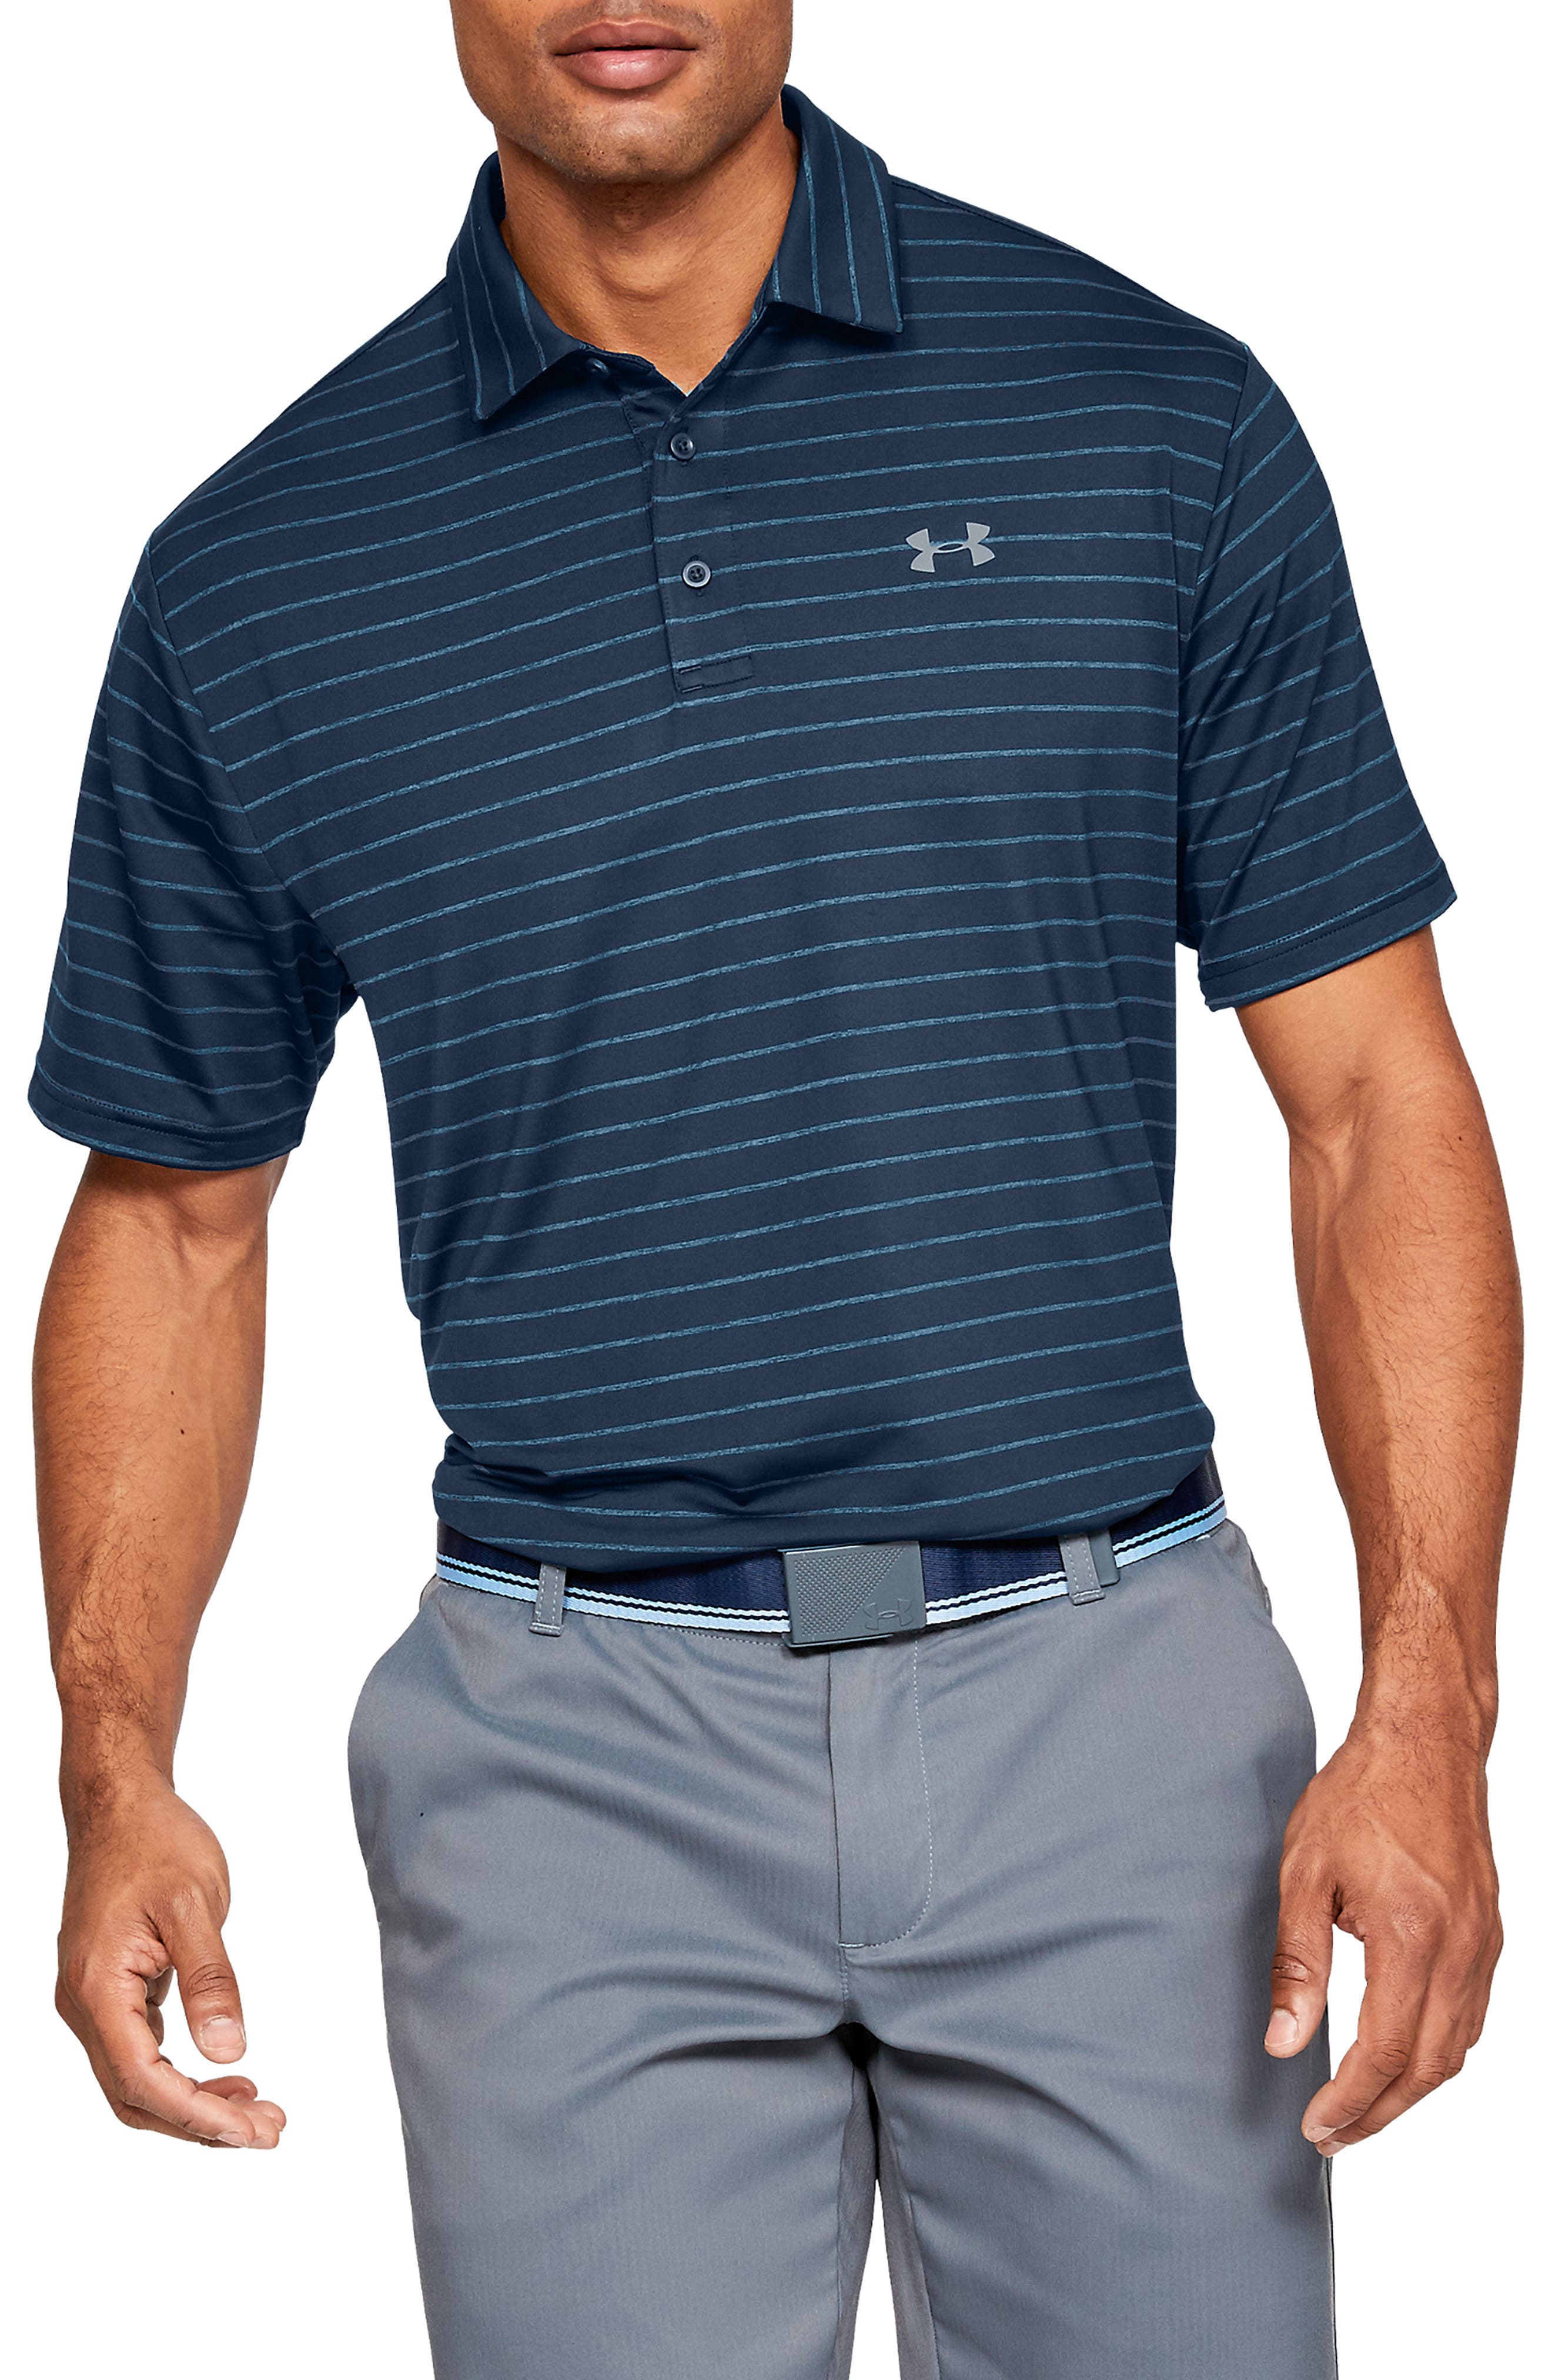 e380980d5 Under Armour Playoff 2.0 Loose Fit Polo In Academy / / Pitch Gray ...